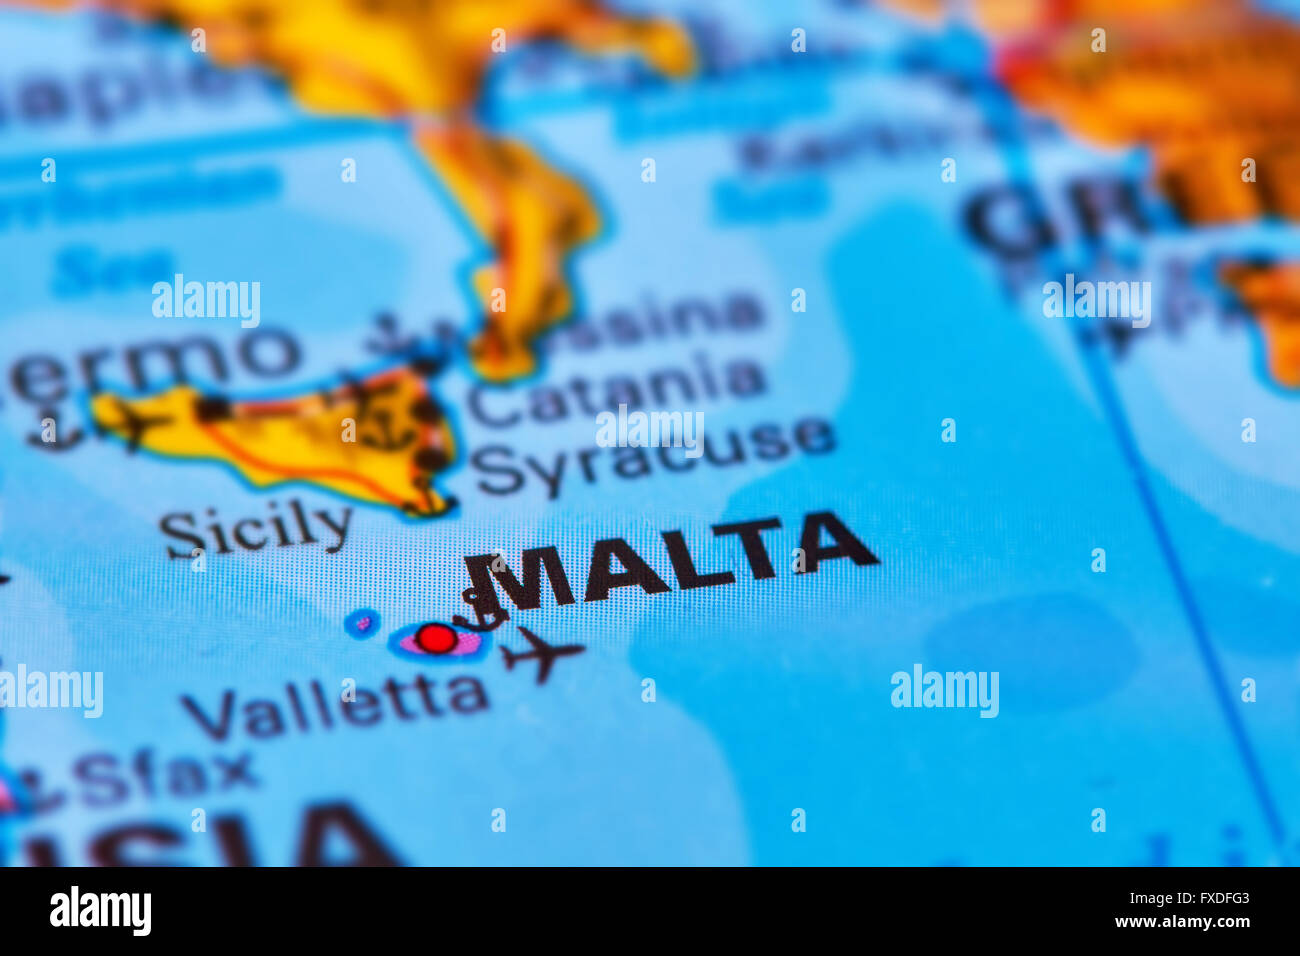 Malta islands in europe on the world map stock photo 102330483 malta islands in europe on the world map gumiabroncs Choice Image